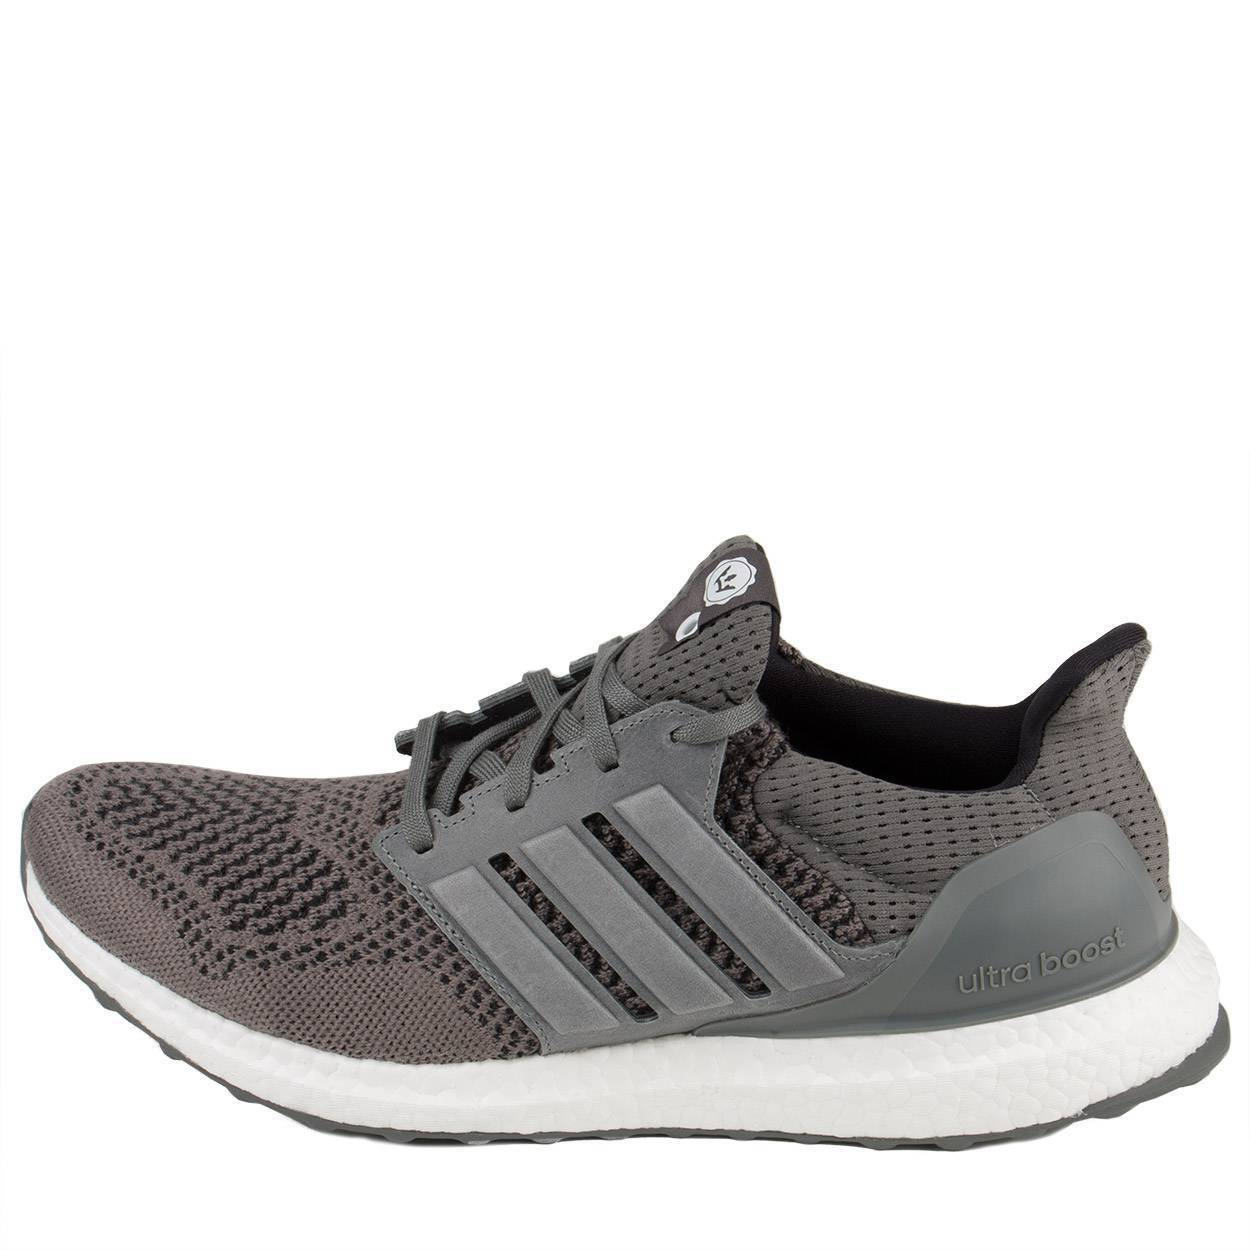 Adidas Mens Ultra Boost HighSnobiety Grey White S74879 Size Size Size 11.5 f59ede